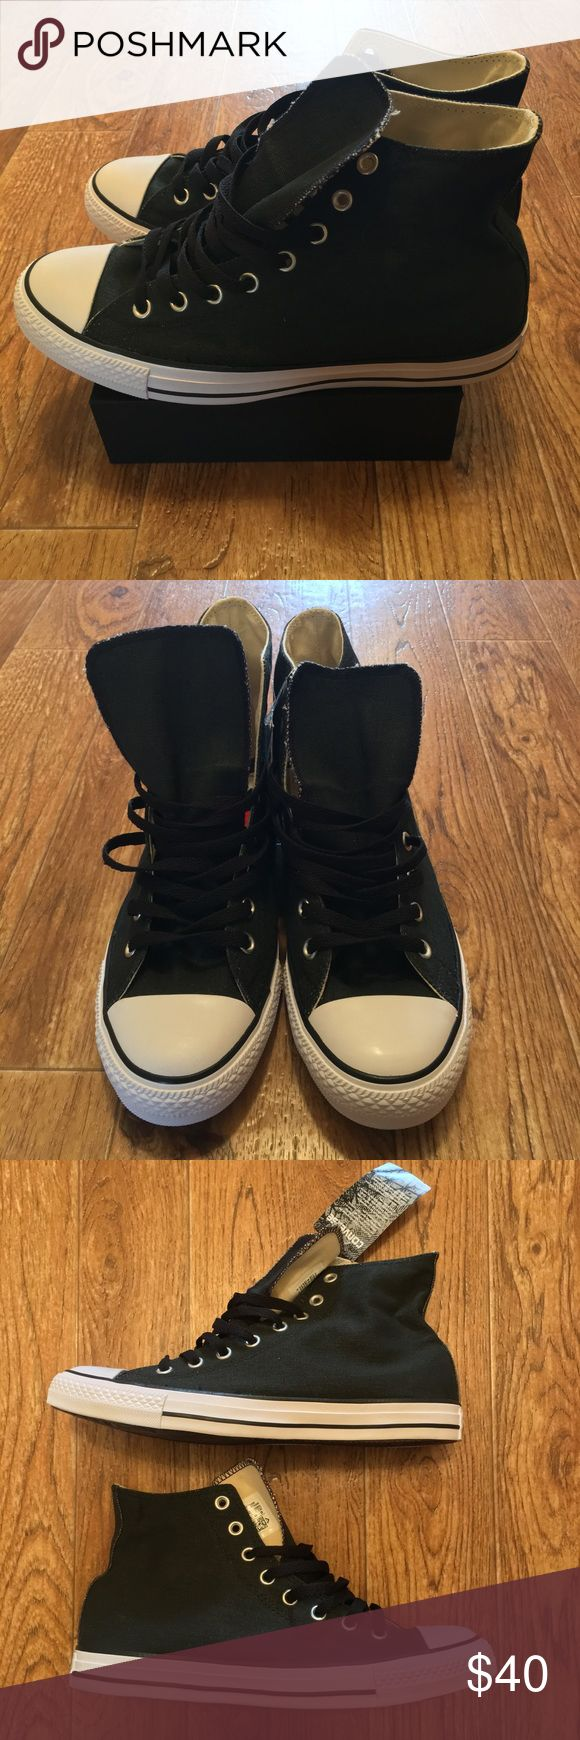 """[Converse] New Chuck Taylor All Star Washed Black New Converse All Star Sneakers, the color of these is defined as """"Washed Black Coated"""" .. they look like slightly faded black denim jeans.  Men's Size 9.5 (Converse box not included) Converse Shoes Sneakers"""